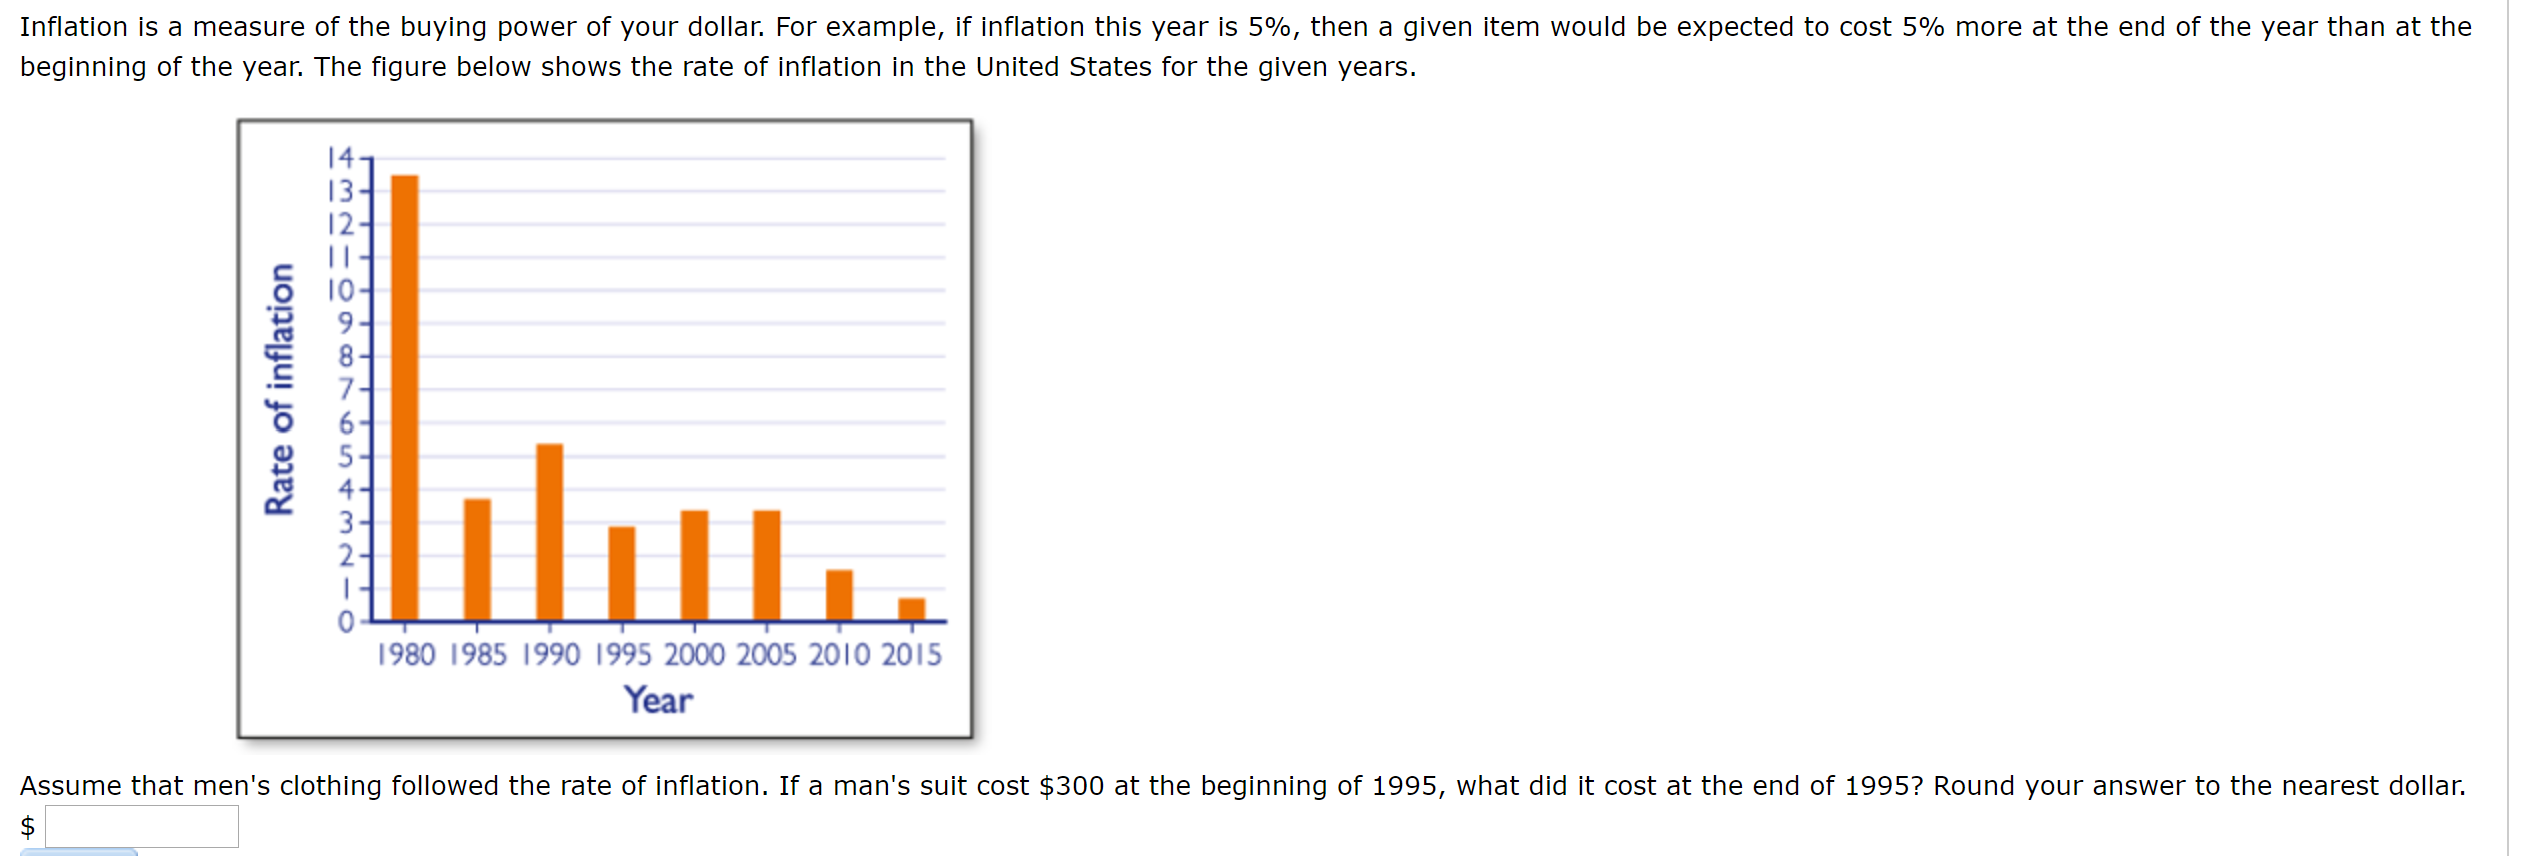 Inflation is a measure of the buying power of your dollar. For example, if inflation this year is 5%, then a given item would be expected to cost 5% more at the end of the year than at the beginning of the year. The figure below shows the rate of inflation in the United States for the given years. 14 13- 7. 3- 2- П 1980 1985 1990 1995 2000 2005 2010 2015 Year Assume that men's clothing followed the rate of inflation. If a man's suit cost $300 at the beginning of 1995, what did it cost at the end of 1995? Round your answer to the nearest dollar. Rate of inflation